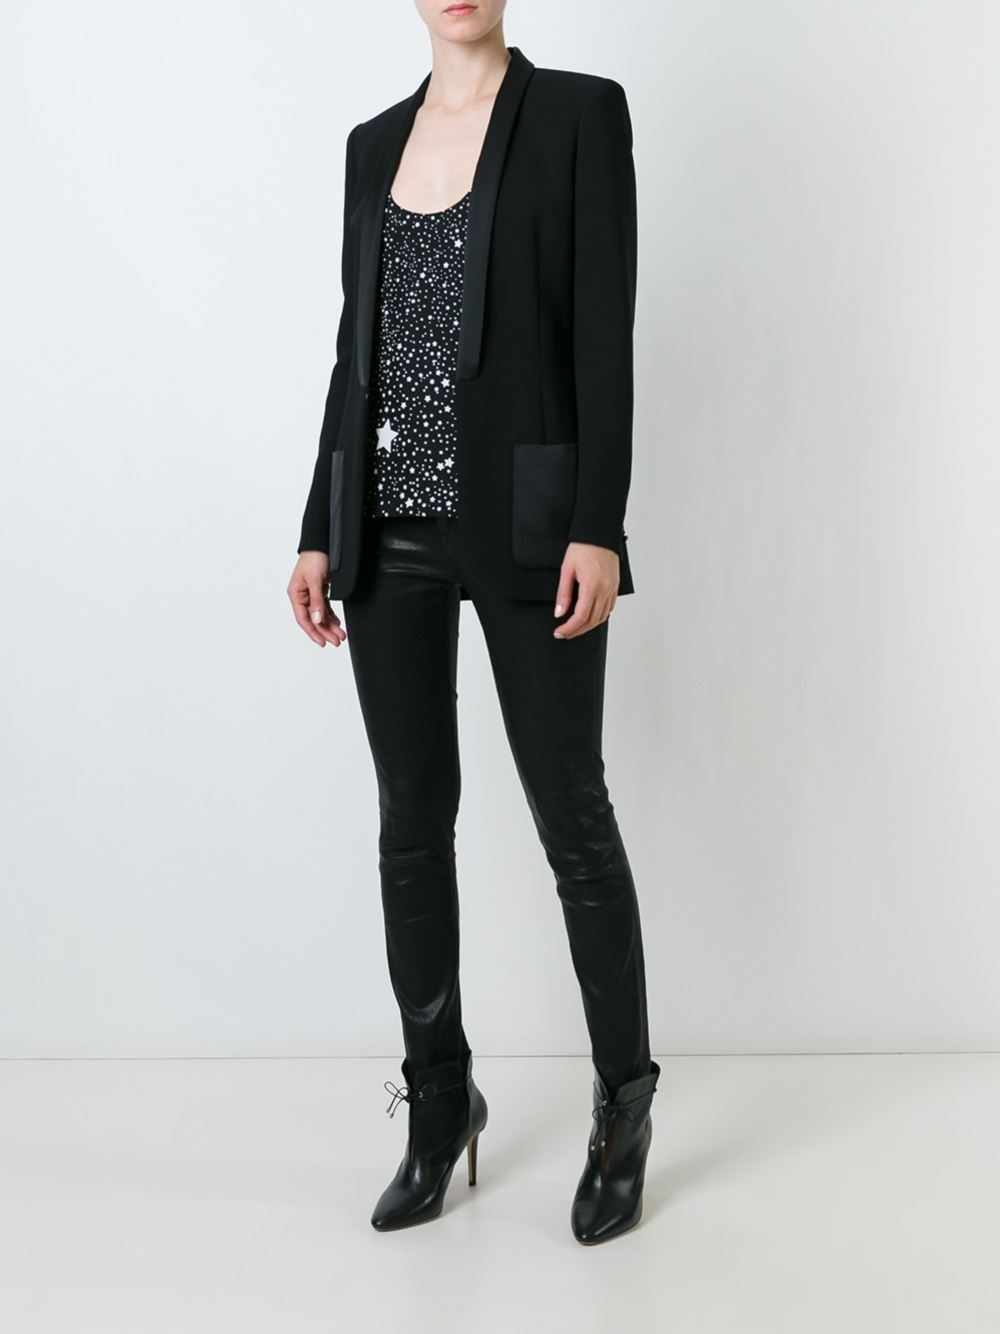 barbara bui_black blazer